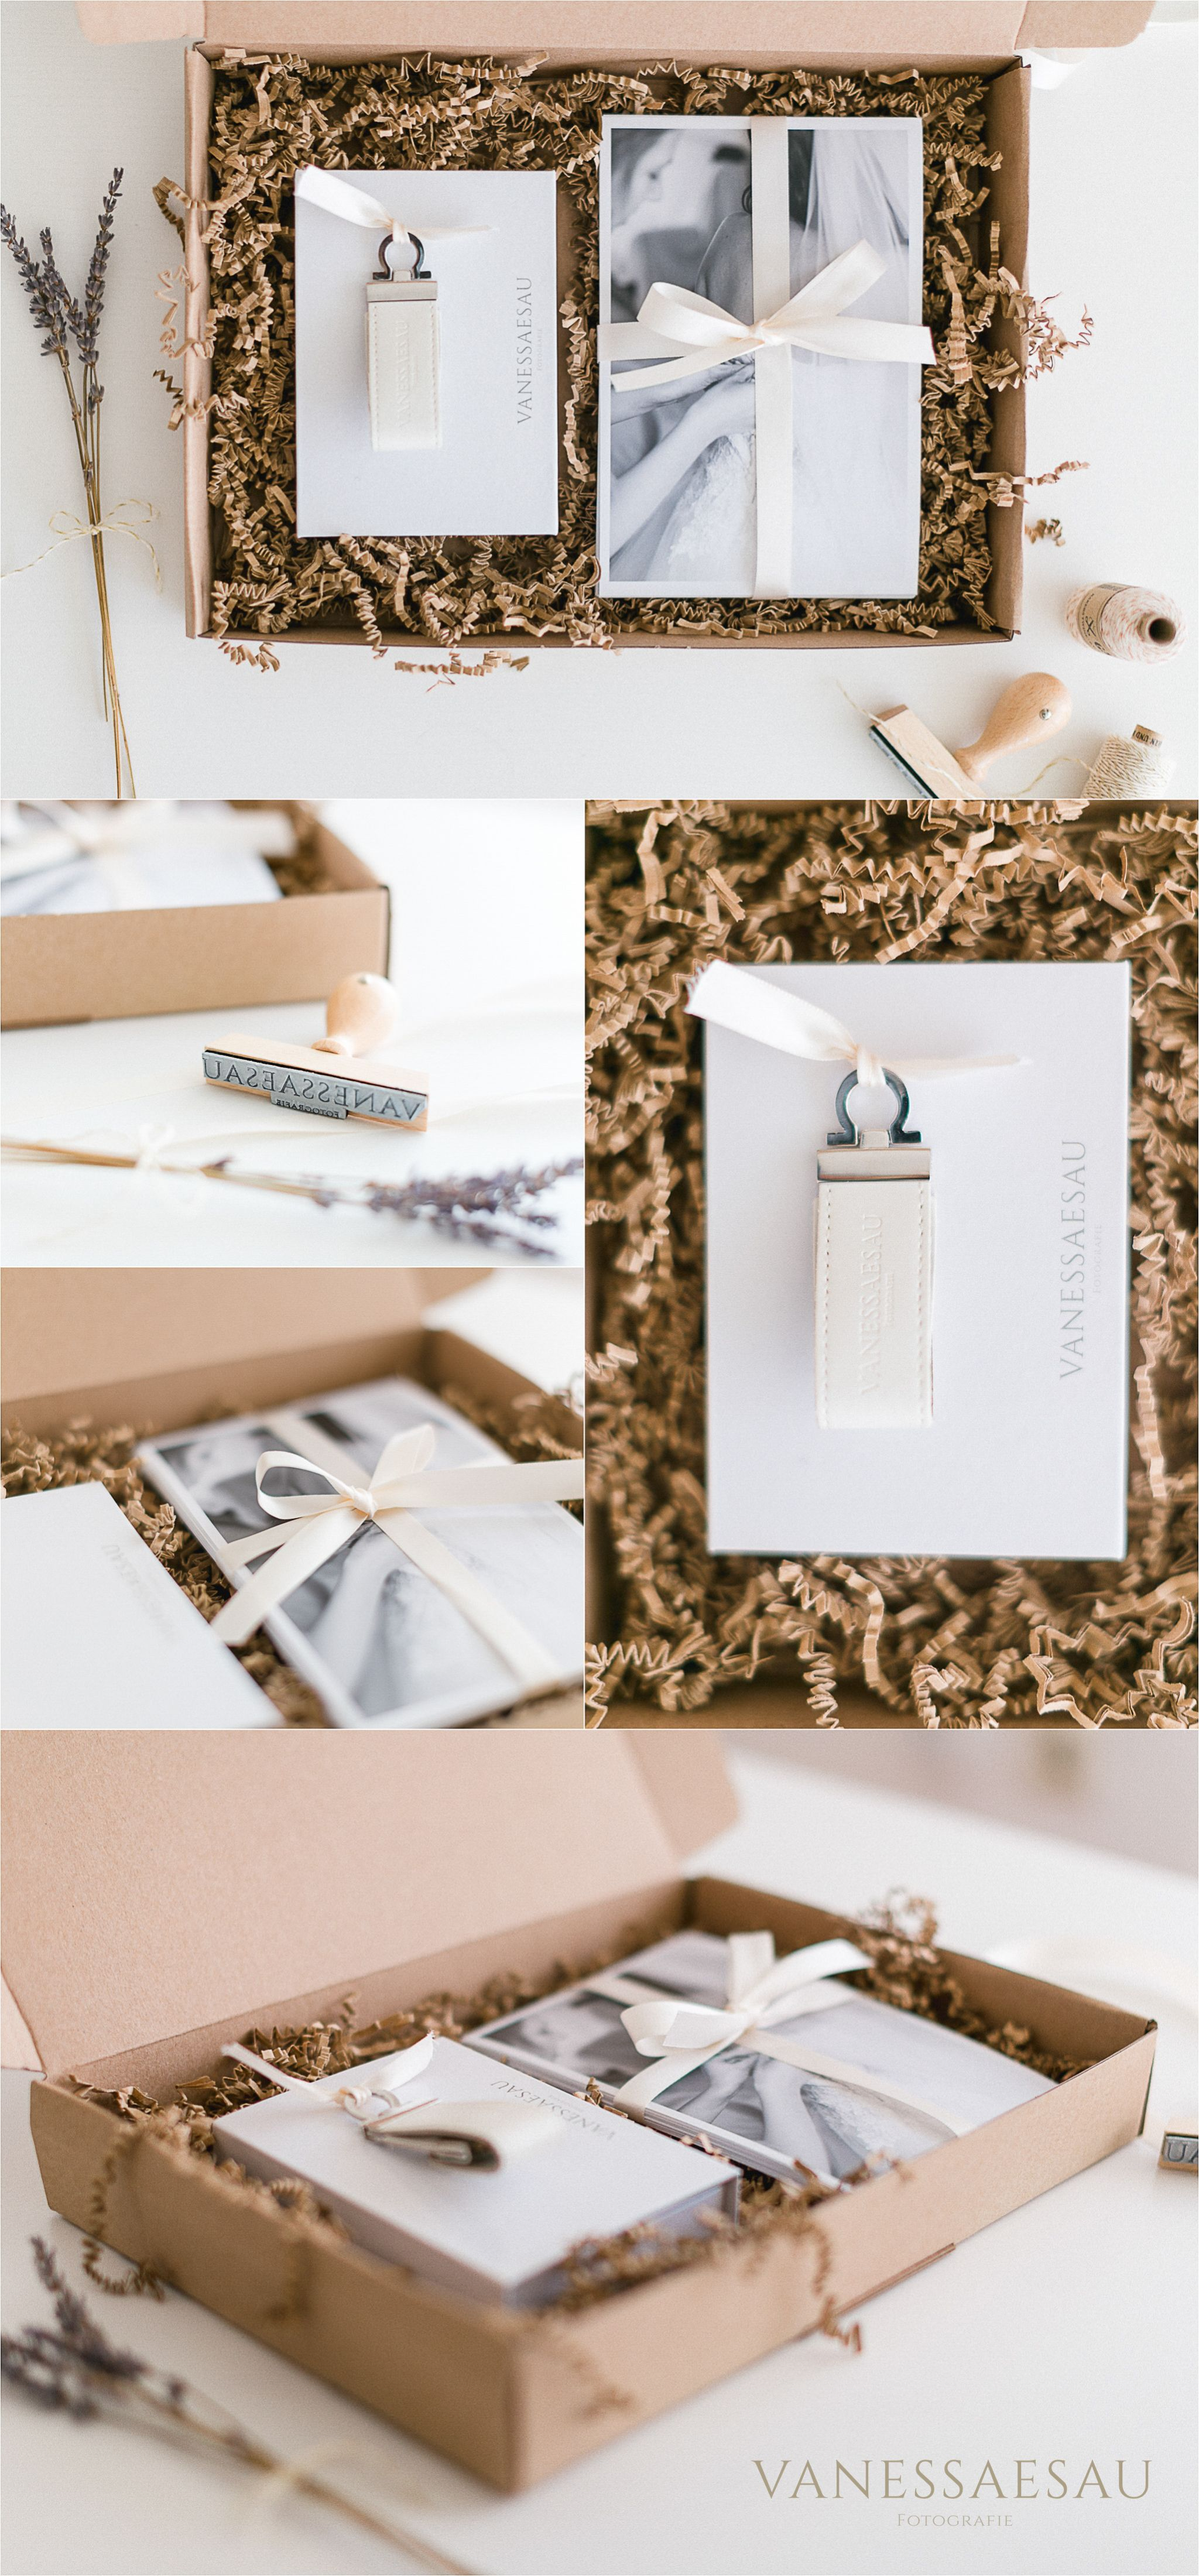 Copyright Vanessa Esau Packing Wrapping Weddingpackage Package